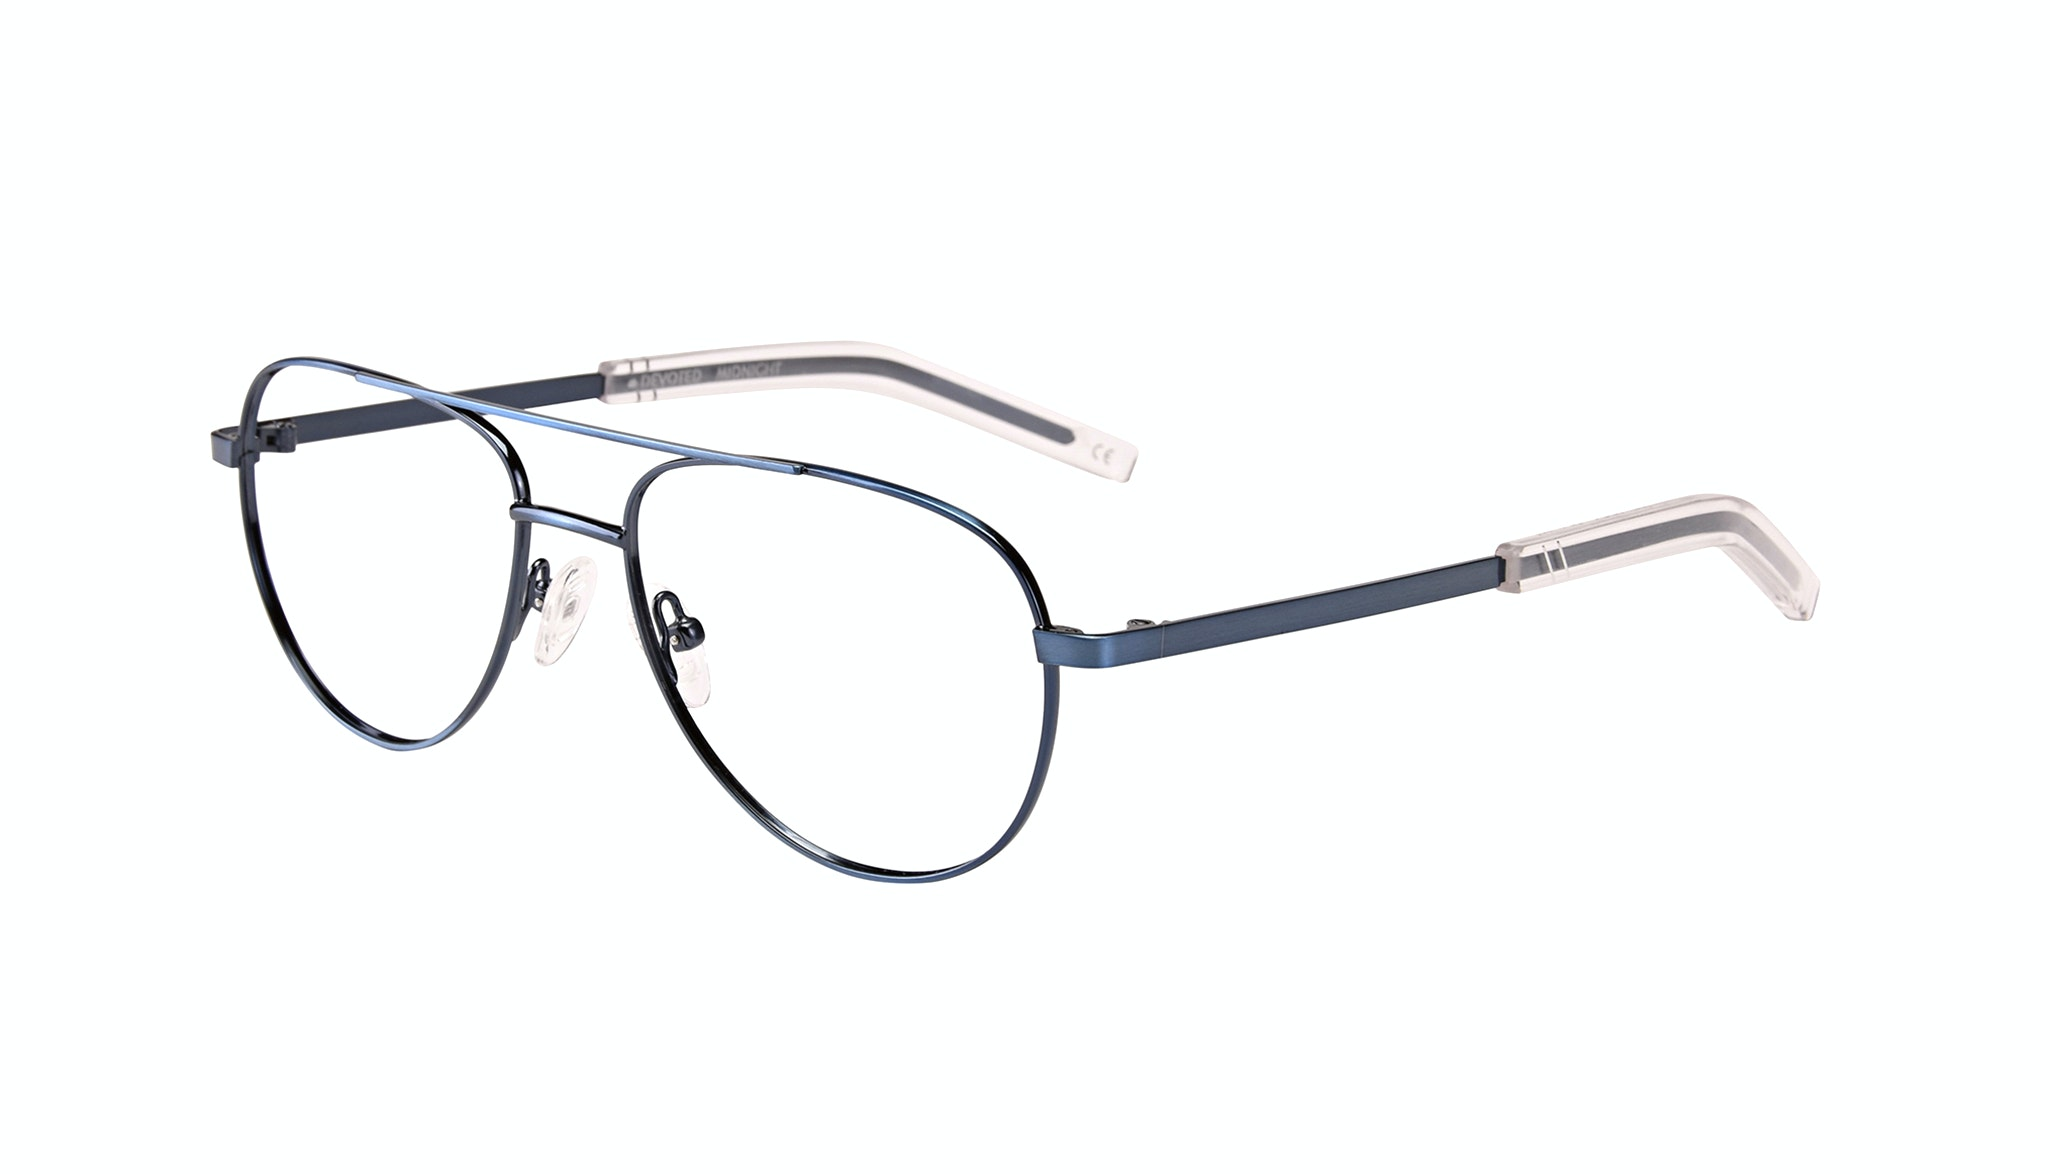 Affordable Fashion Glasses Aviator Eyeglasses Men Devoted Midnight Tilt